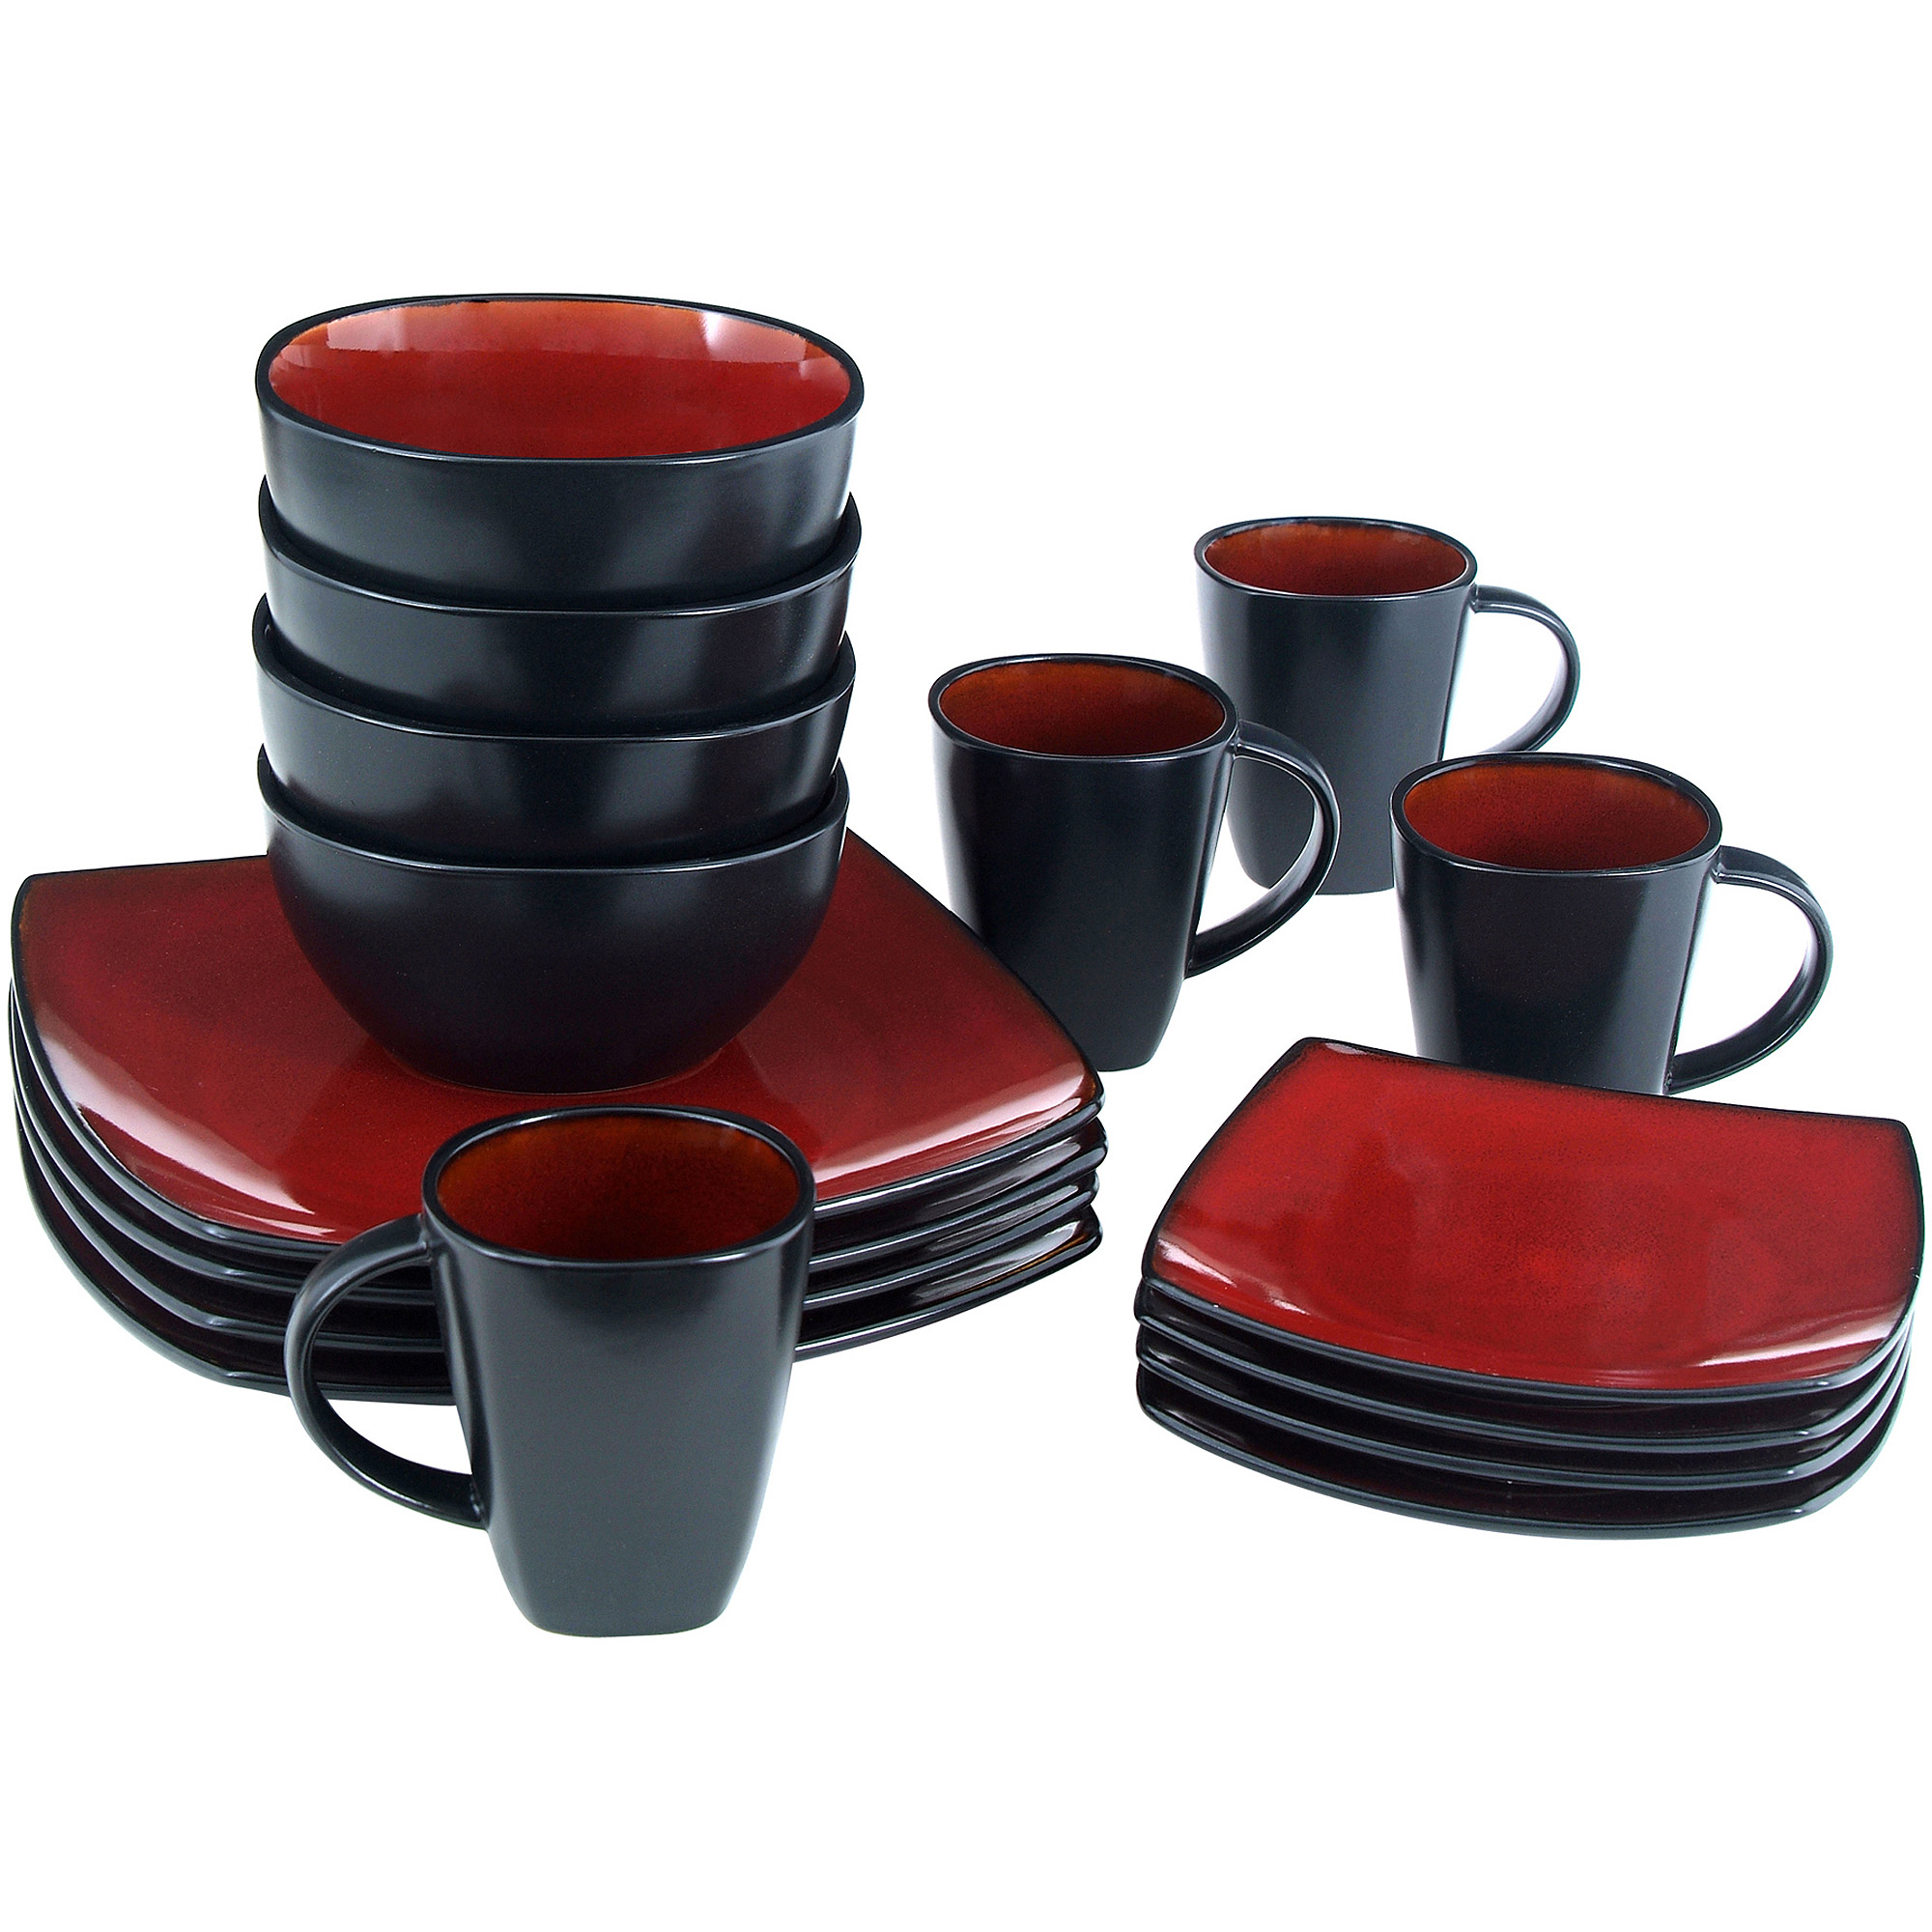 Better Homes & Gardens 16-Piece Dinnerware Set, Tuscan Red